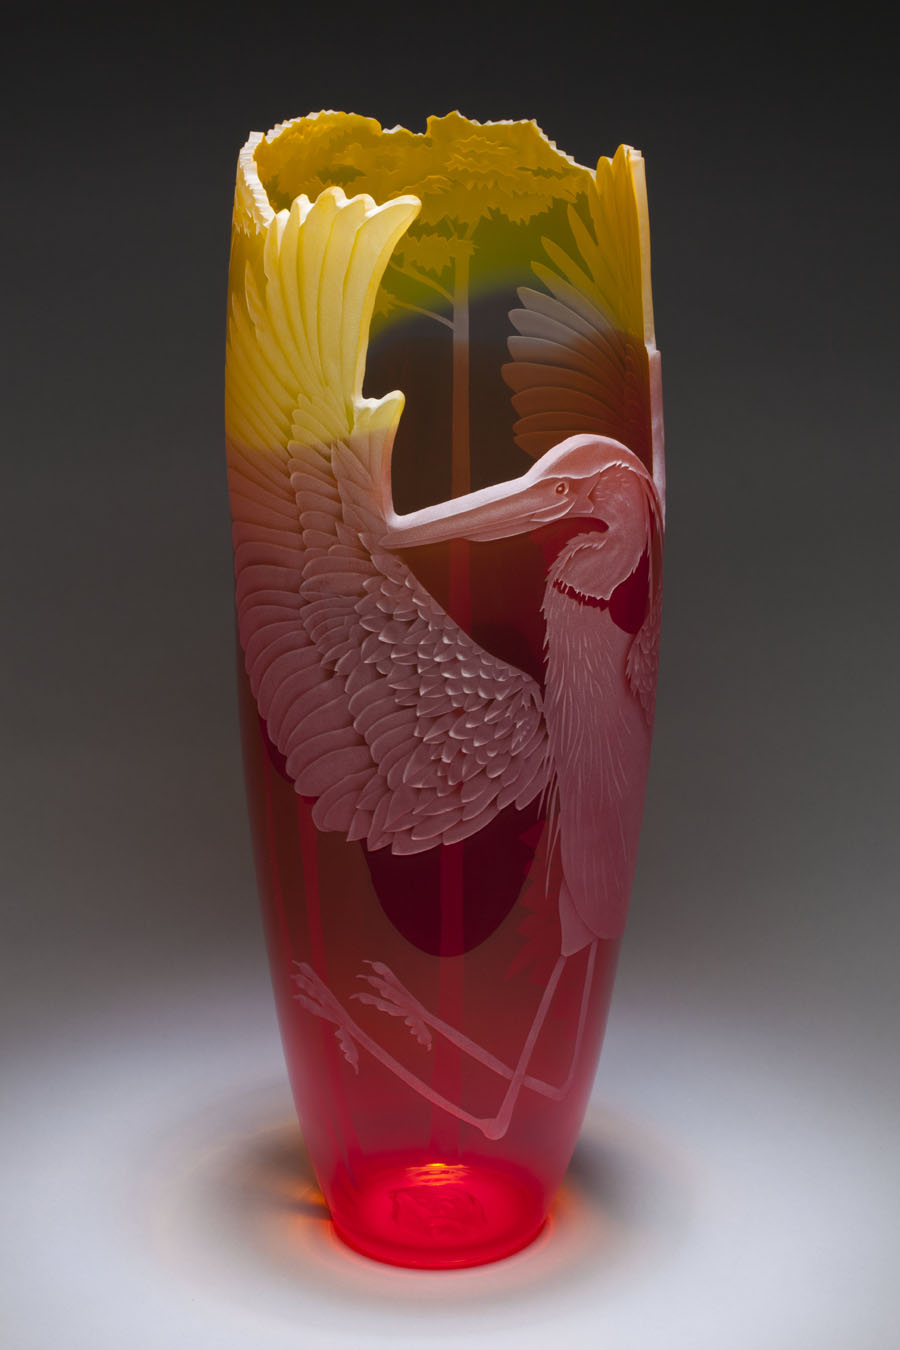 Heron Rising art glass by Cynthia Myers